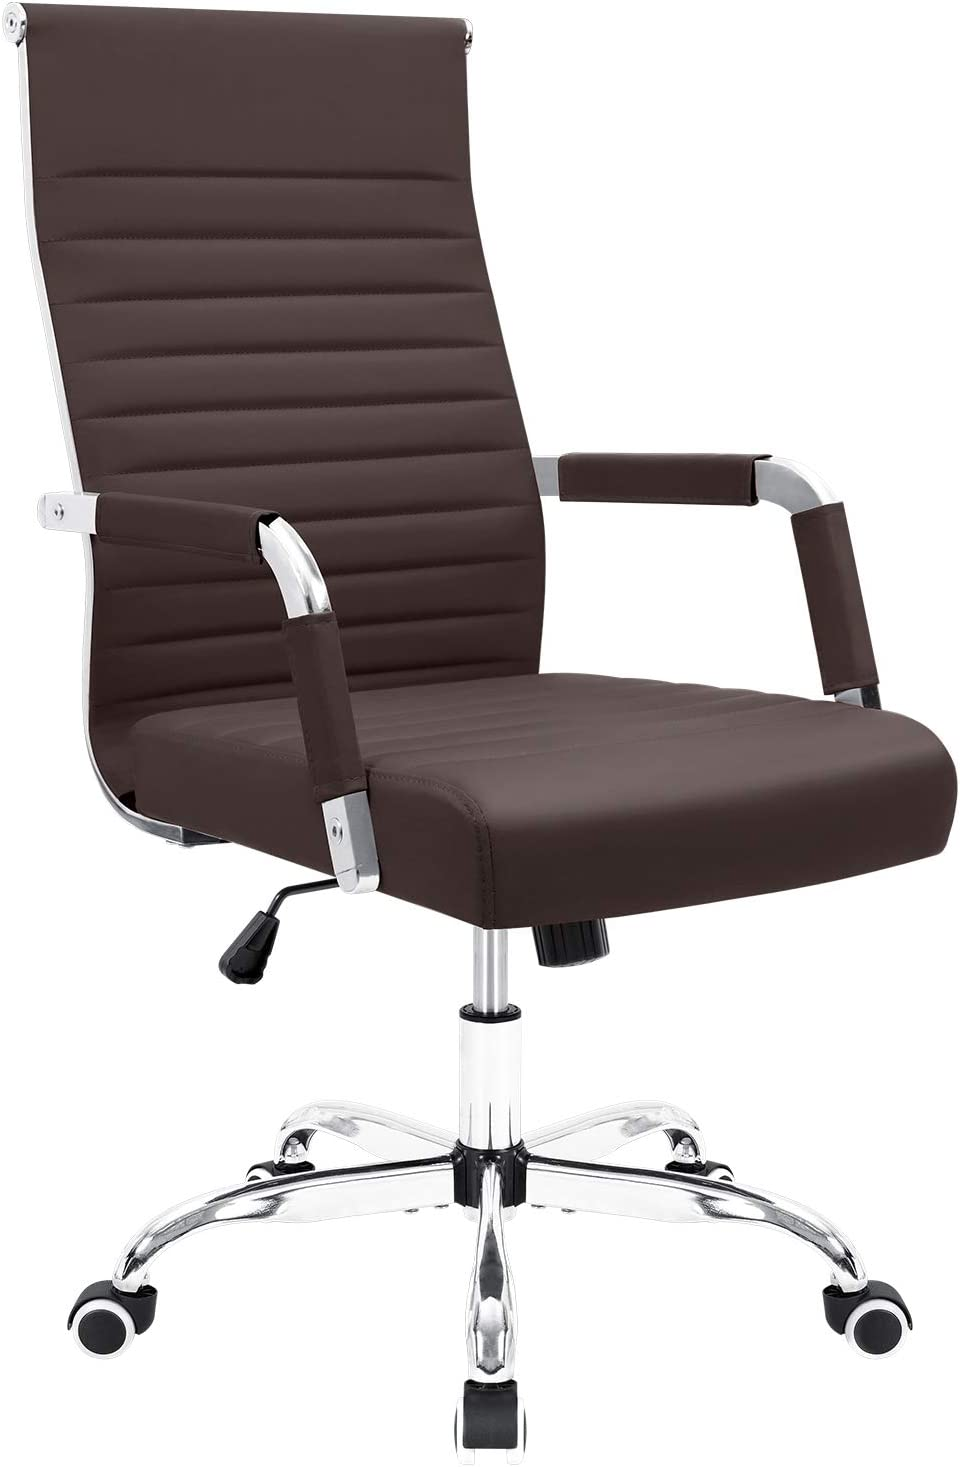 Furmax Ribbed Office Desk Chair Mid-Back PU Leather Executive Conference Task Chair Adjustable Swivel Chair with Arms (Brown)